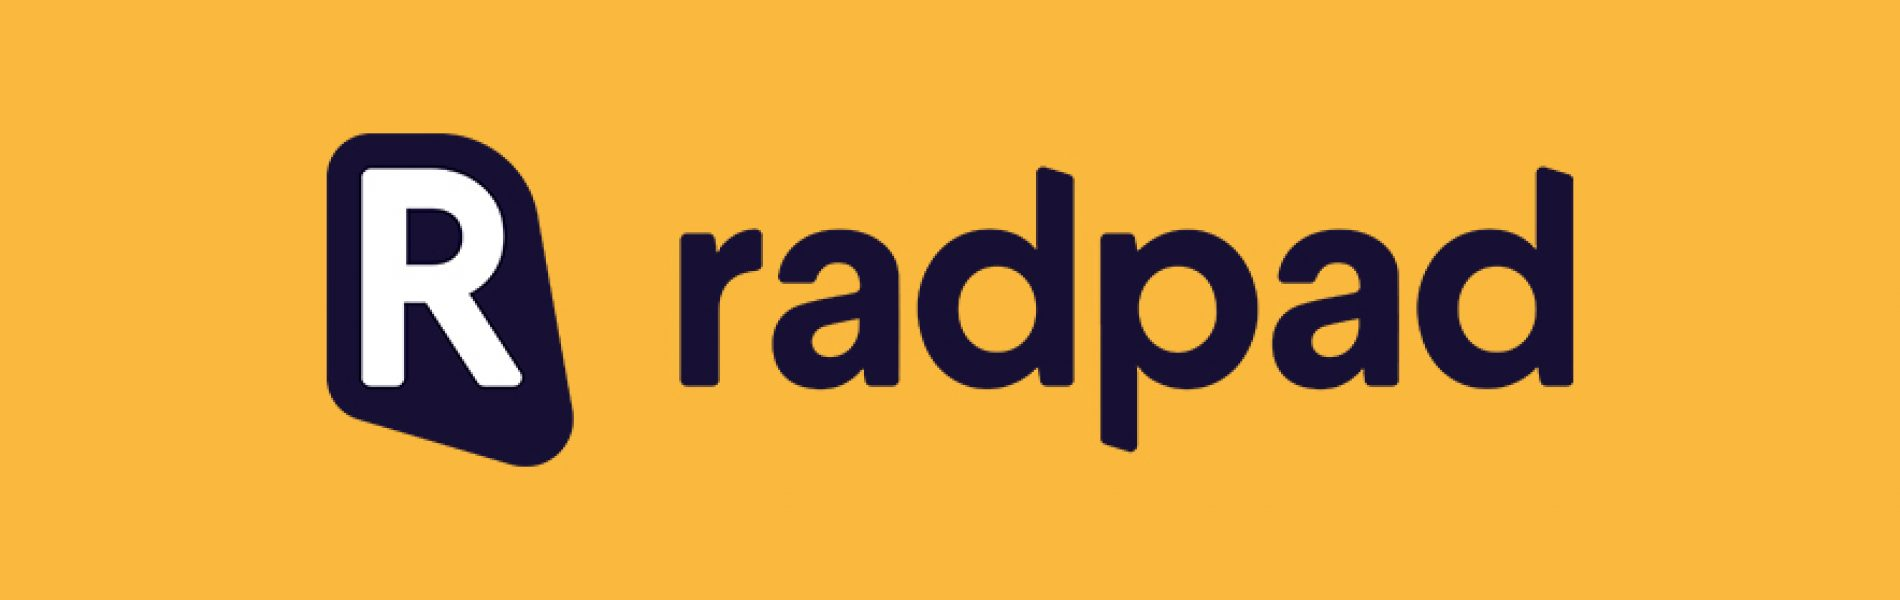 Radpad WARNING – Check Returned due to insufficient funds